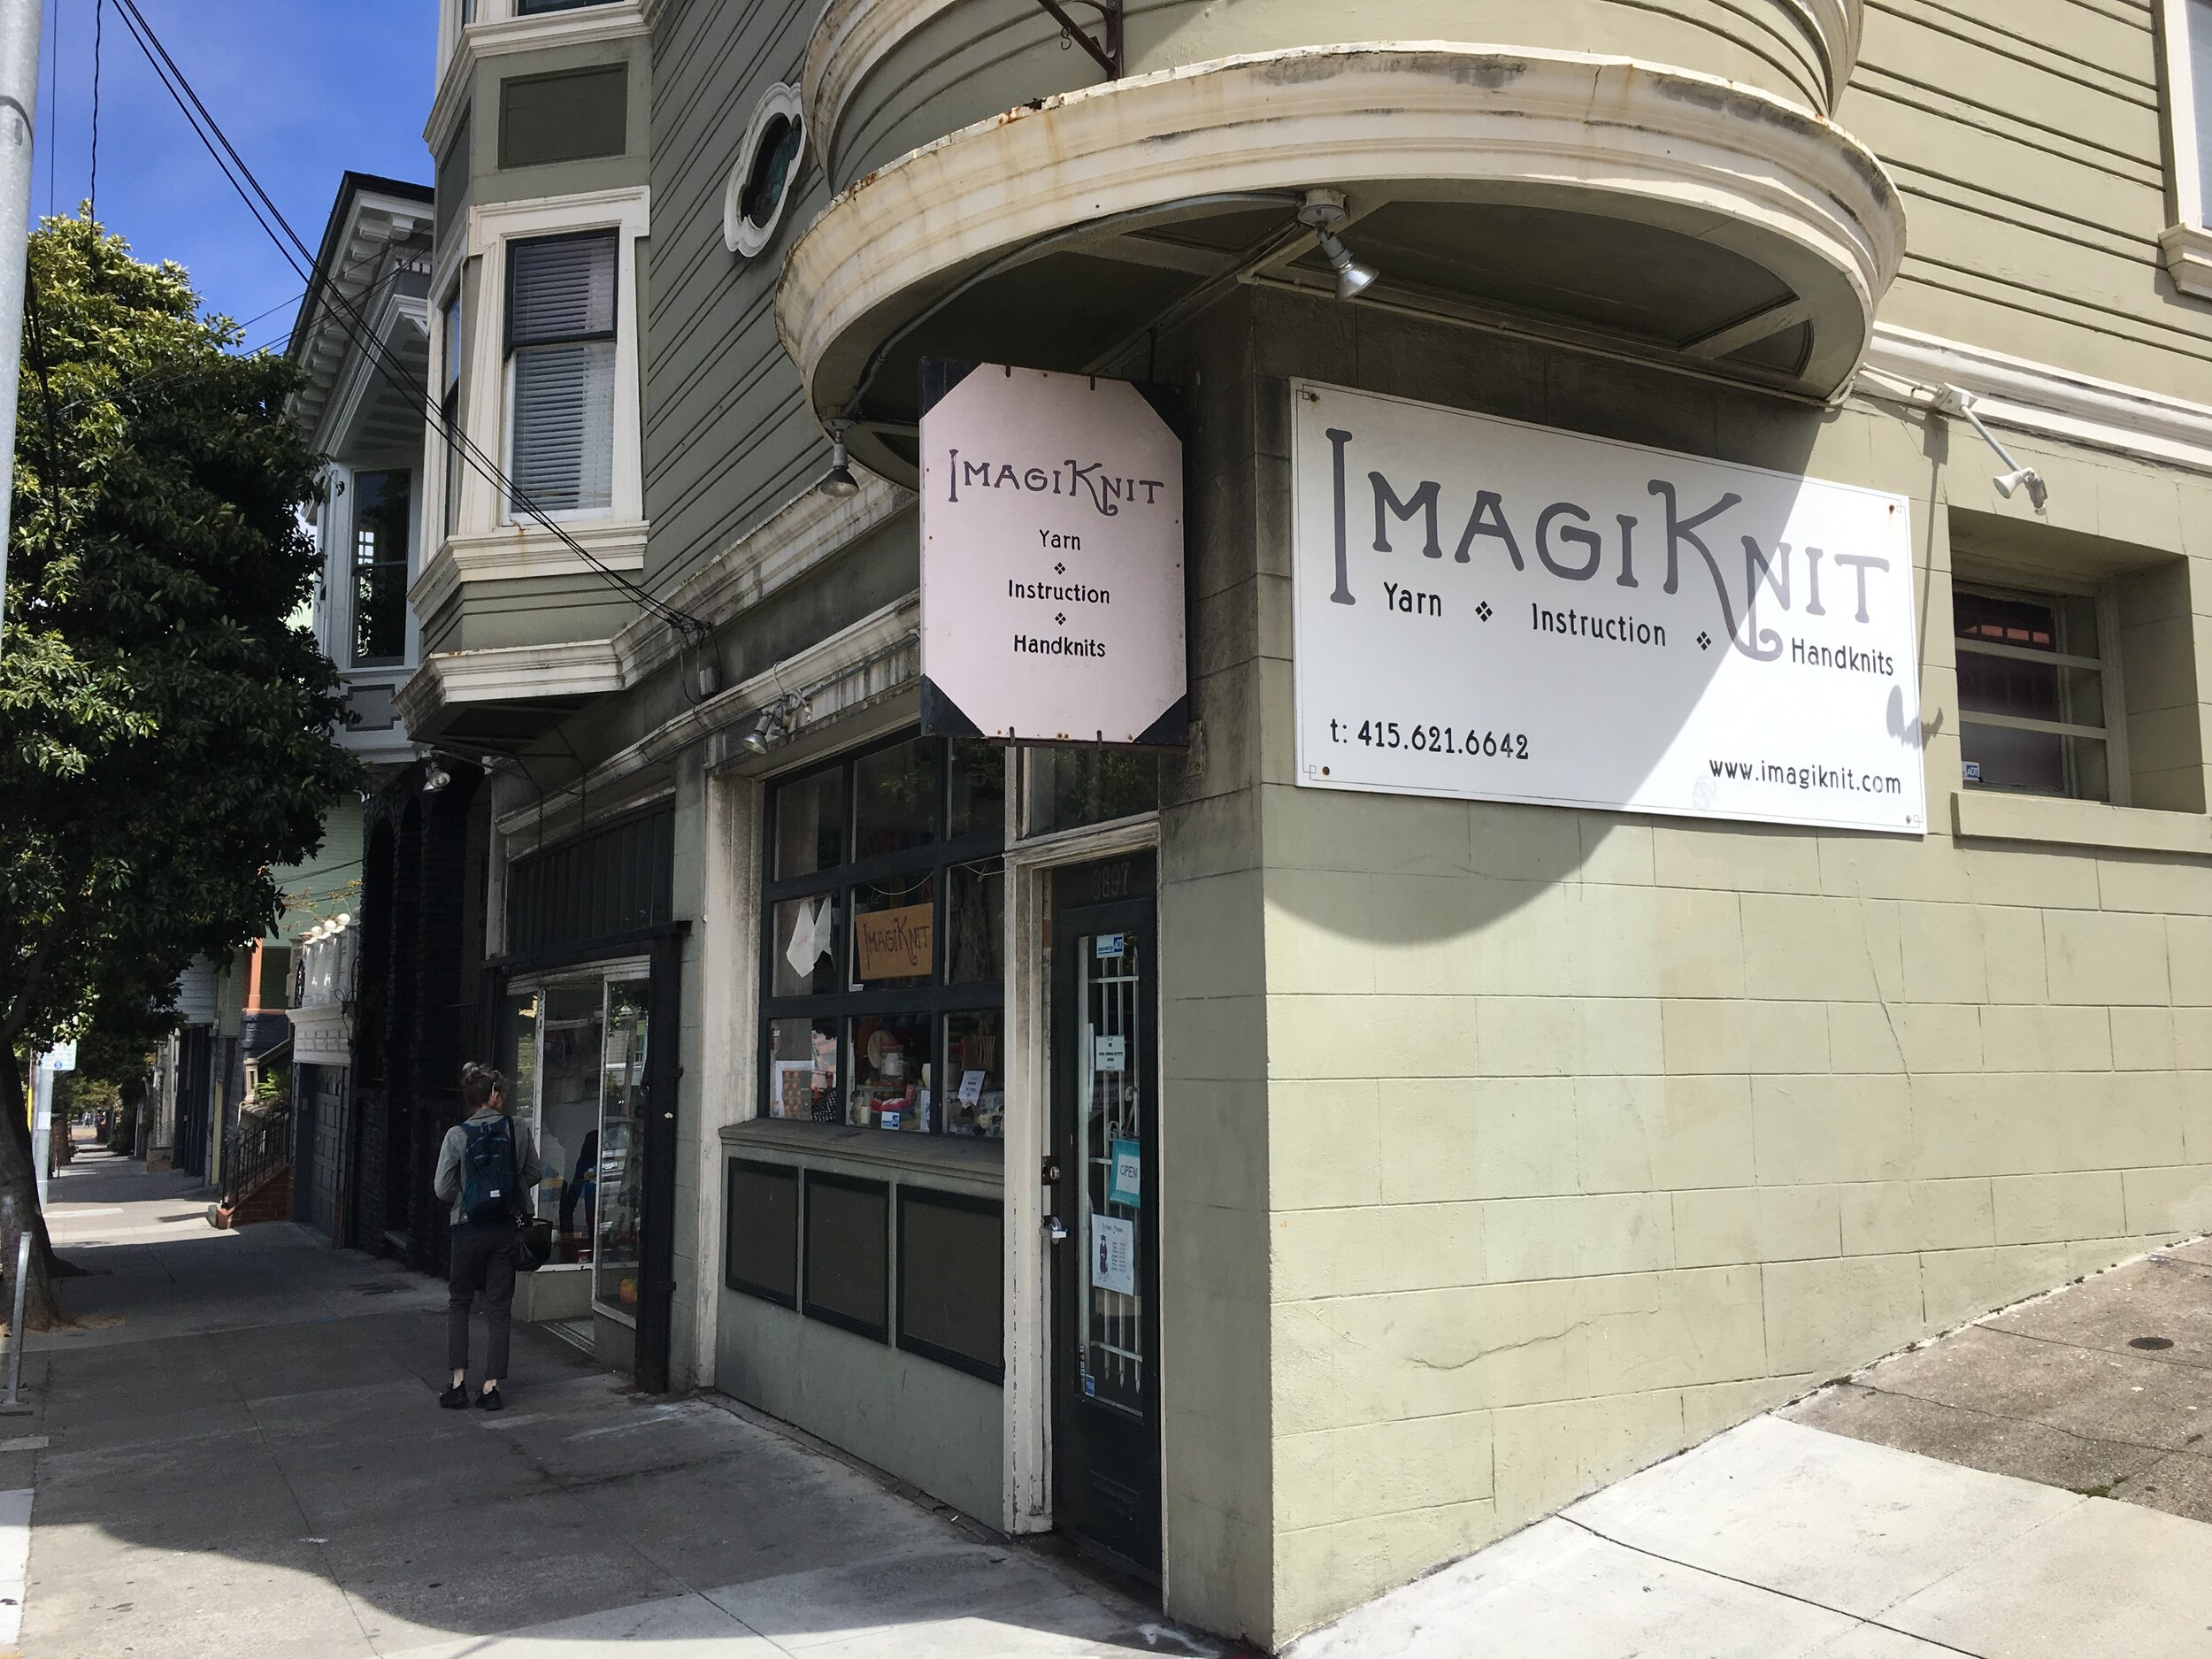 The entrance to ImagiKnit.